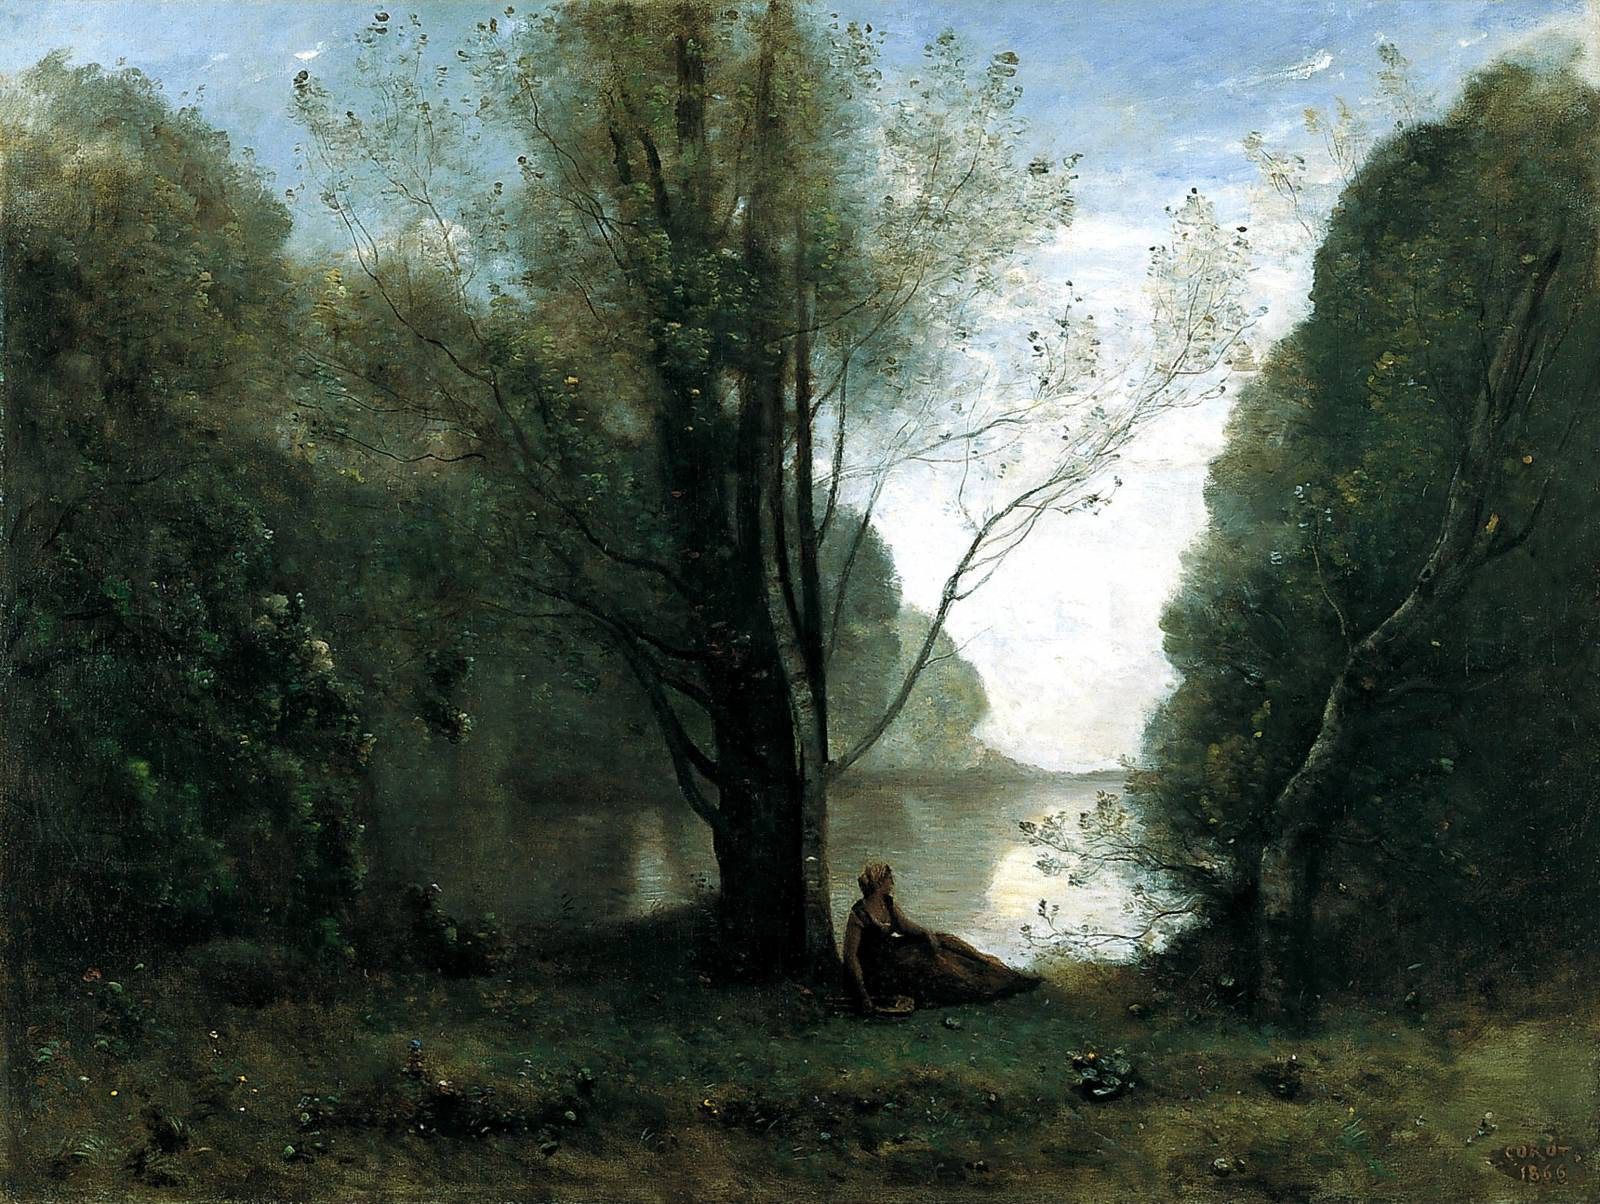 jean-baptiste-camille_corot_-_the_solitude_recollection_of_vigen_limousin_-_google_art_project.jpg